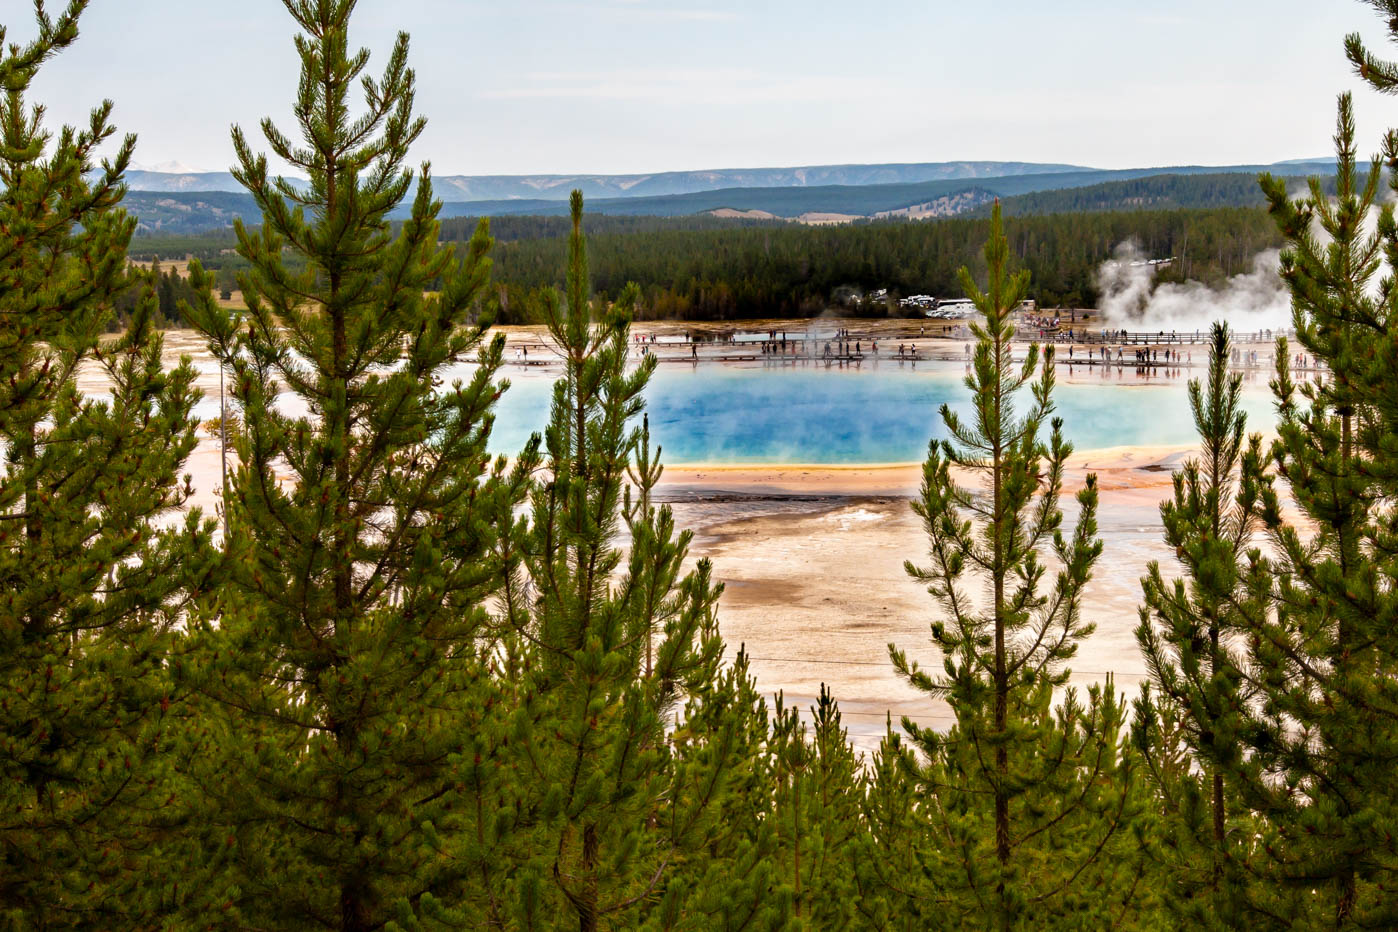 Grand Prismatic Spring Overlook in Yellowstone National Park #vezzaniphotography